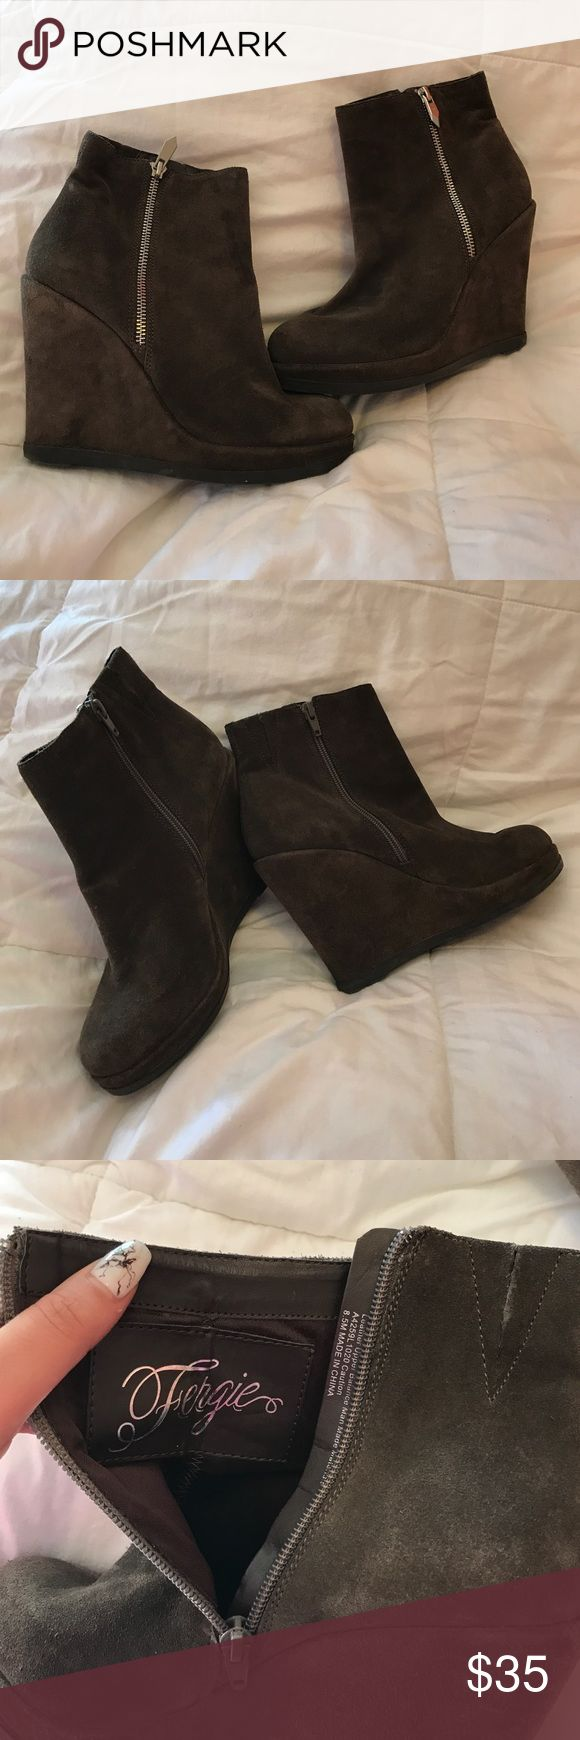 Fergie booties Worn once! Fergie Shoes Ankle Boots & Booties